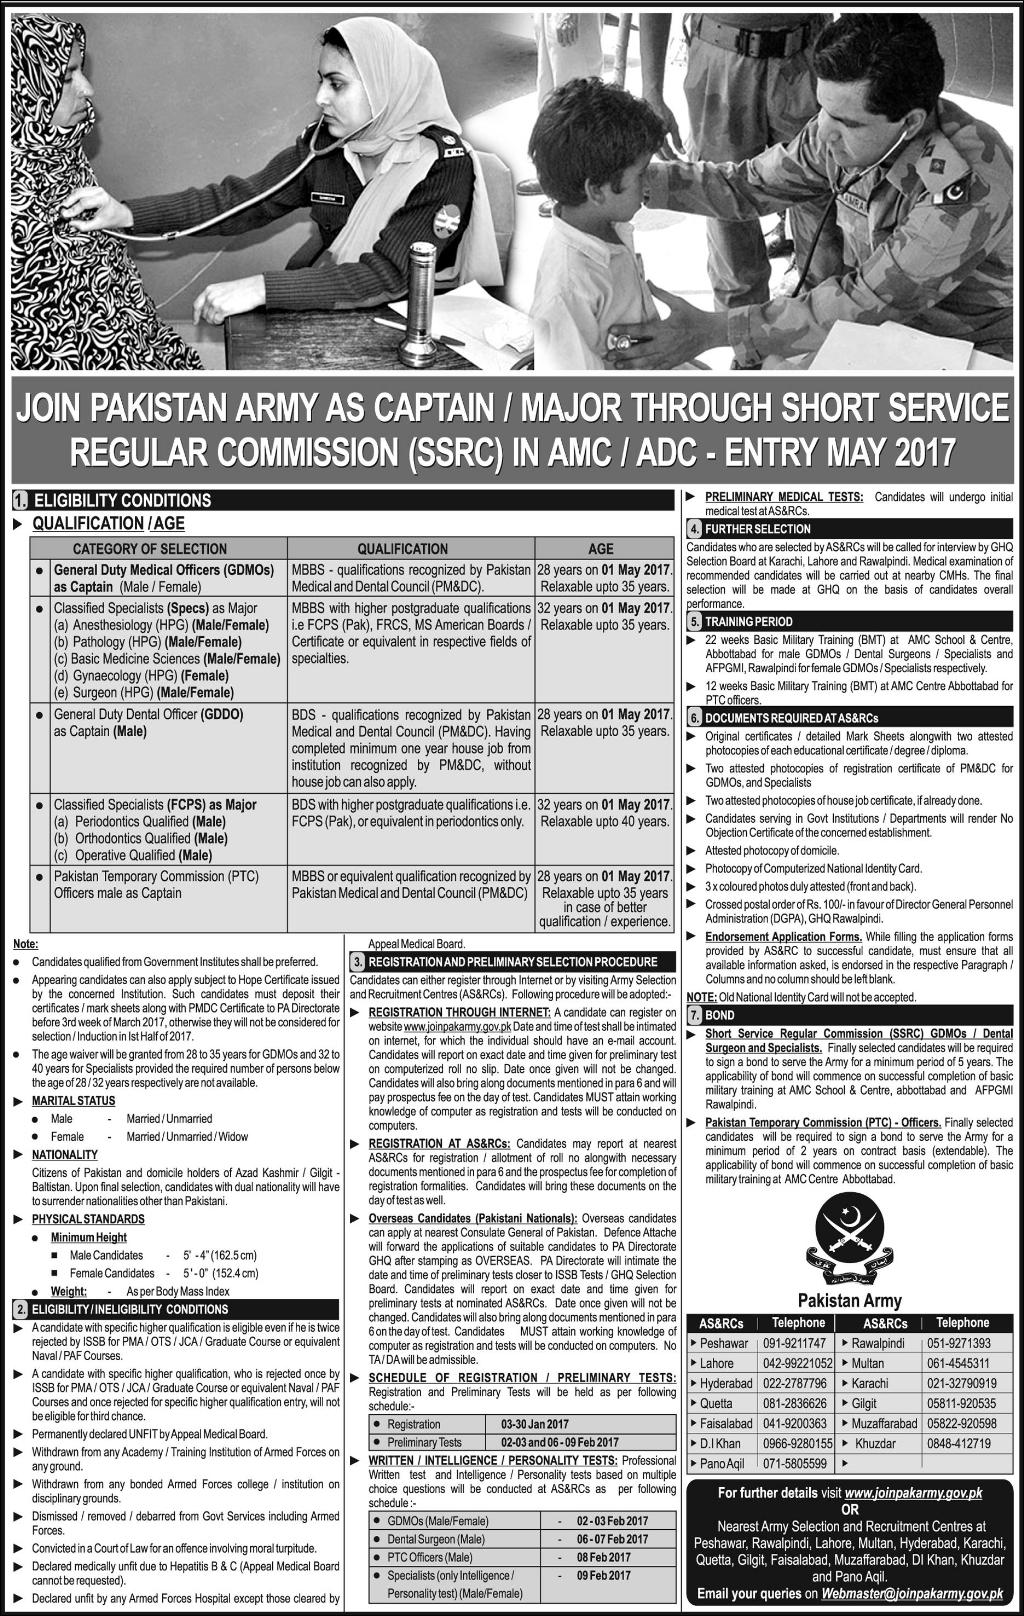 Join pak army ssrc dissertation - Become a member of Pak Army when